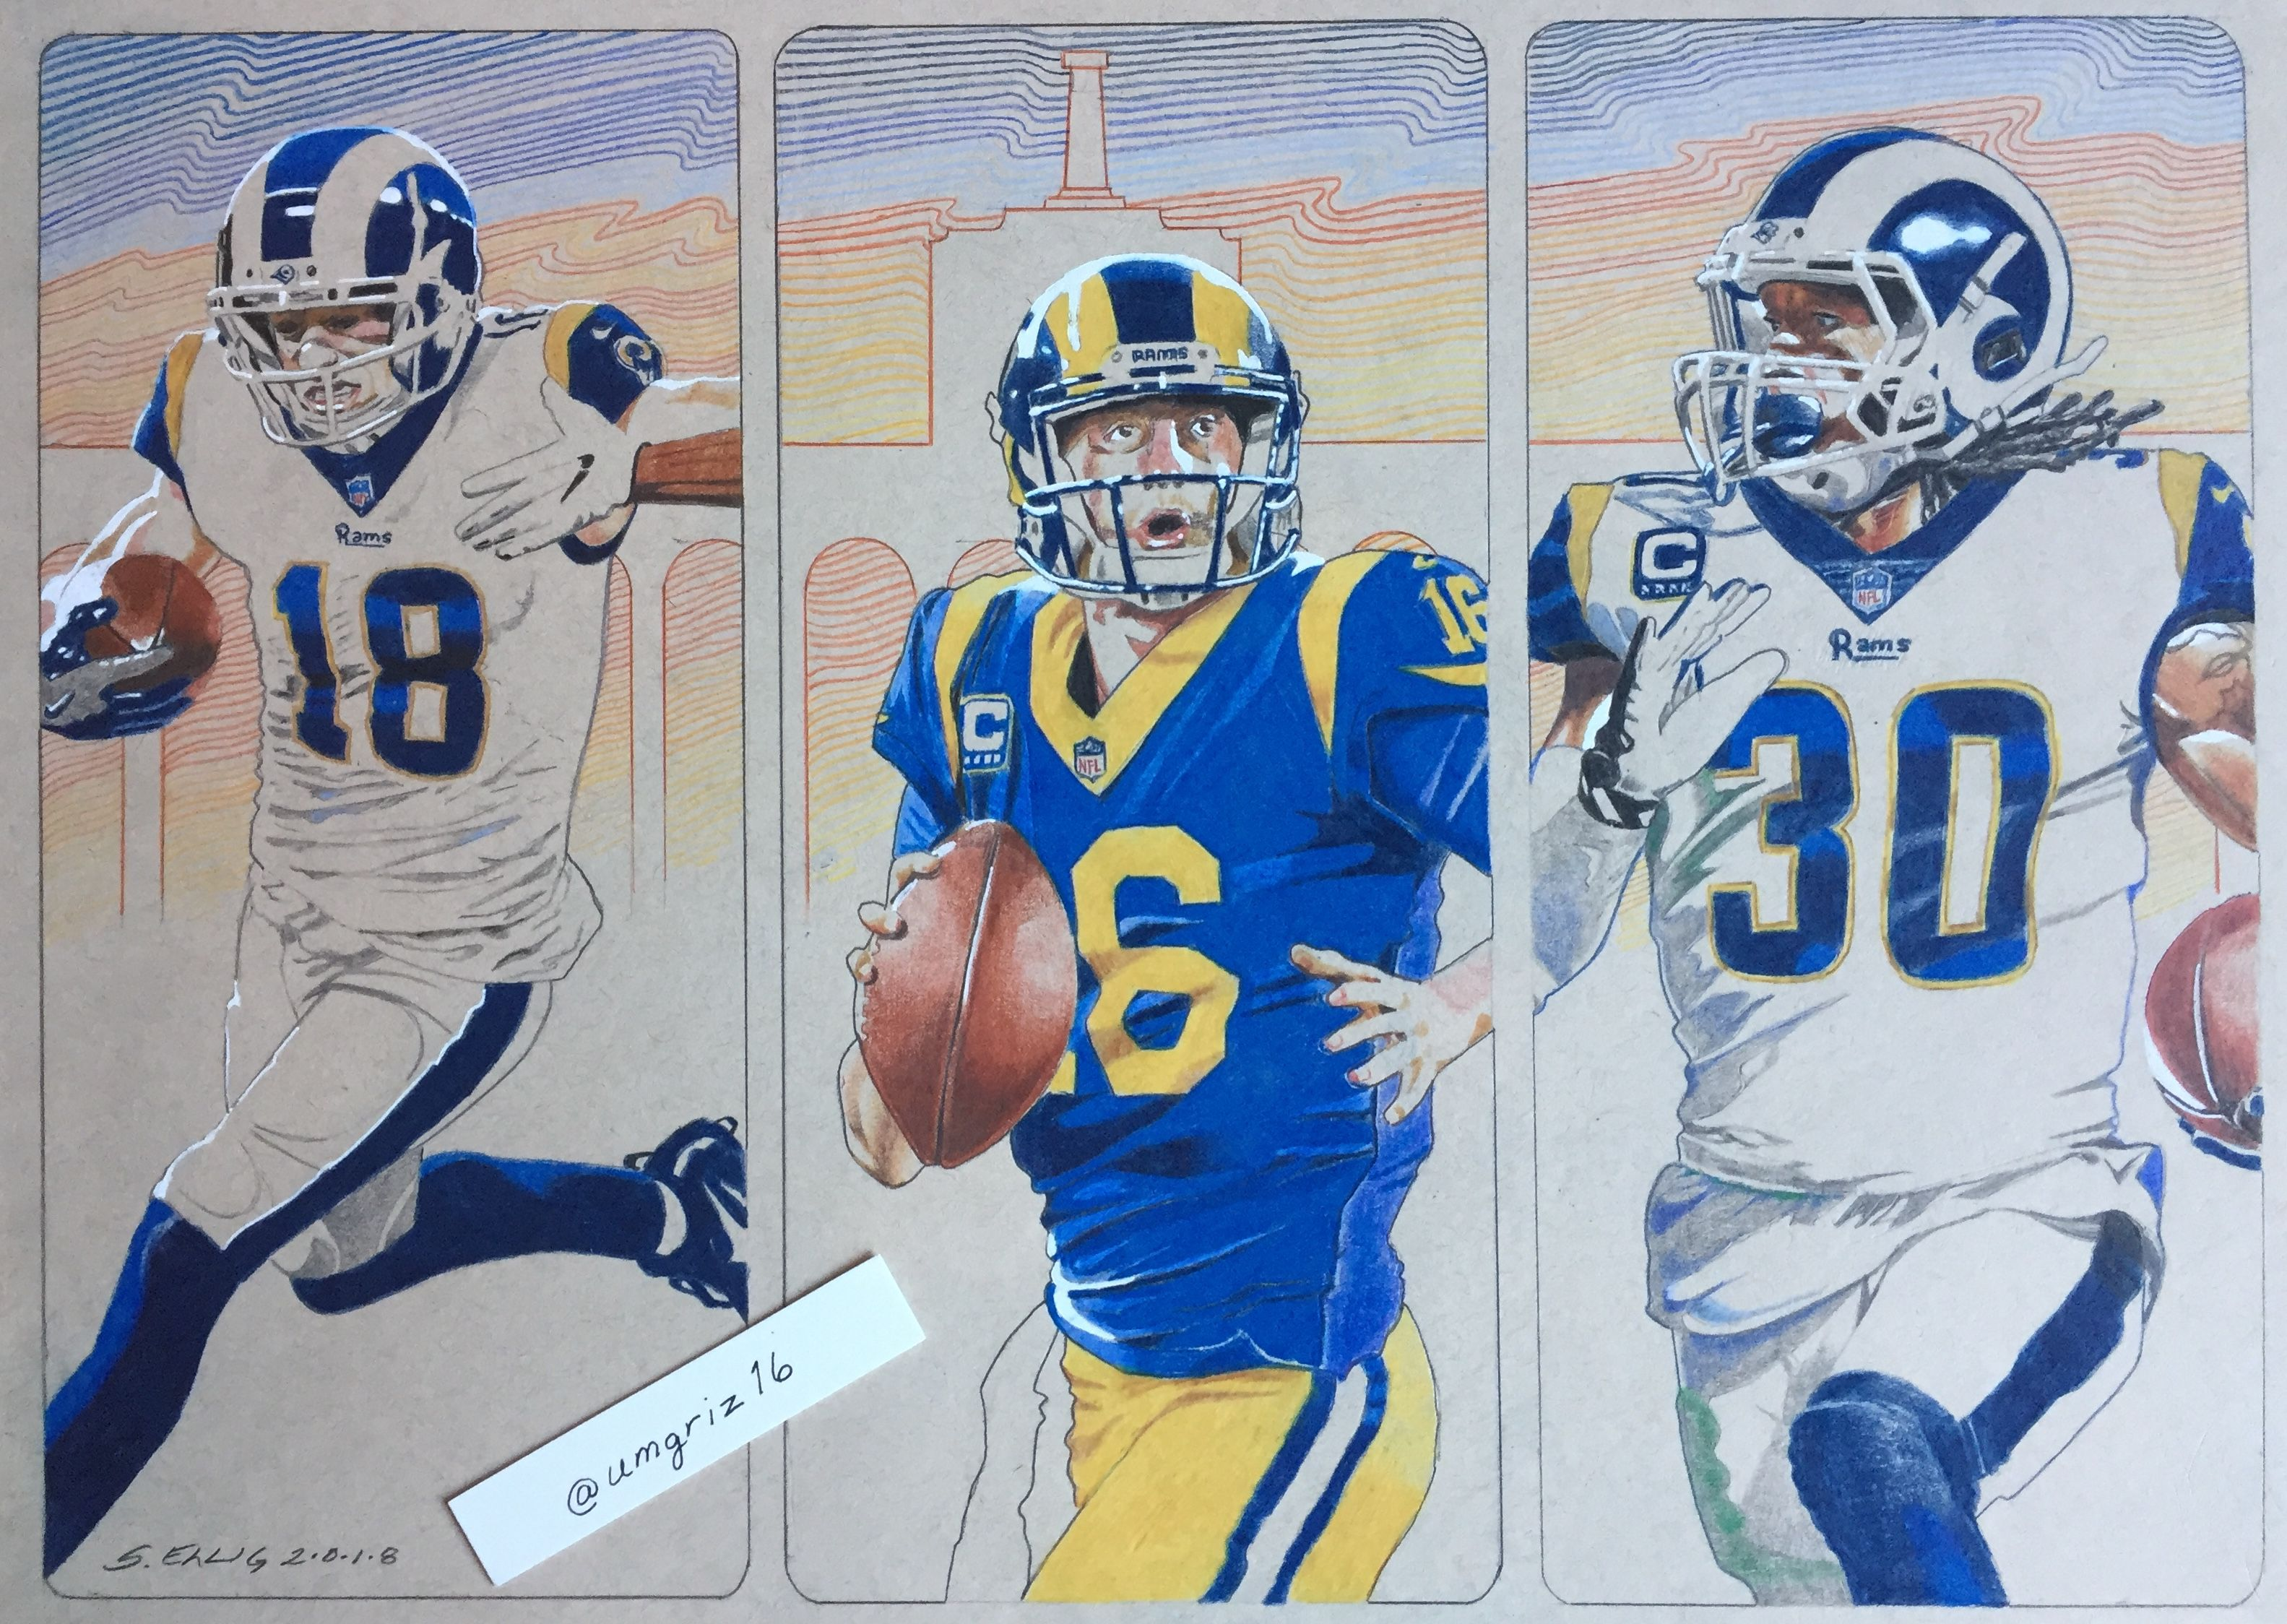 Cooper Kupp Jared Goff Todd Gurley La Rams By Scott Ellig Jared Goff Nfl Football Todd Gurley